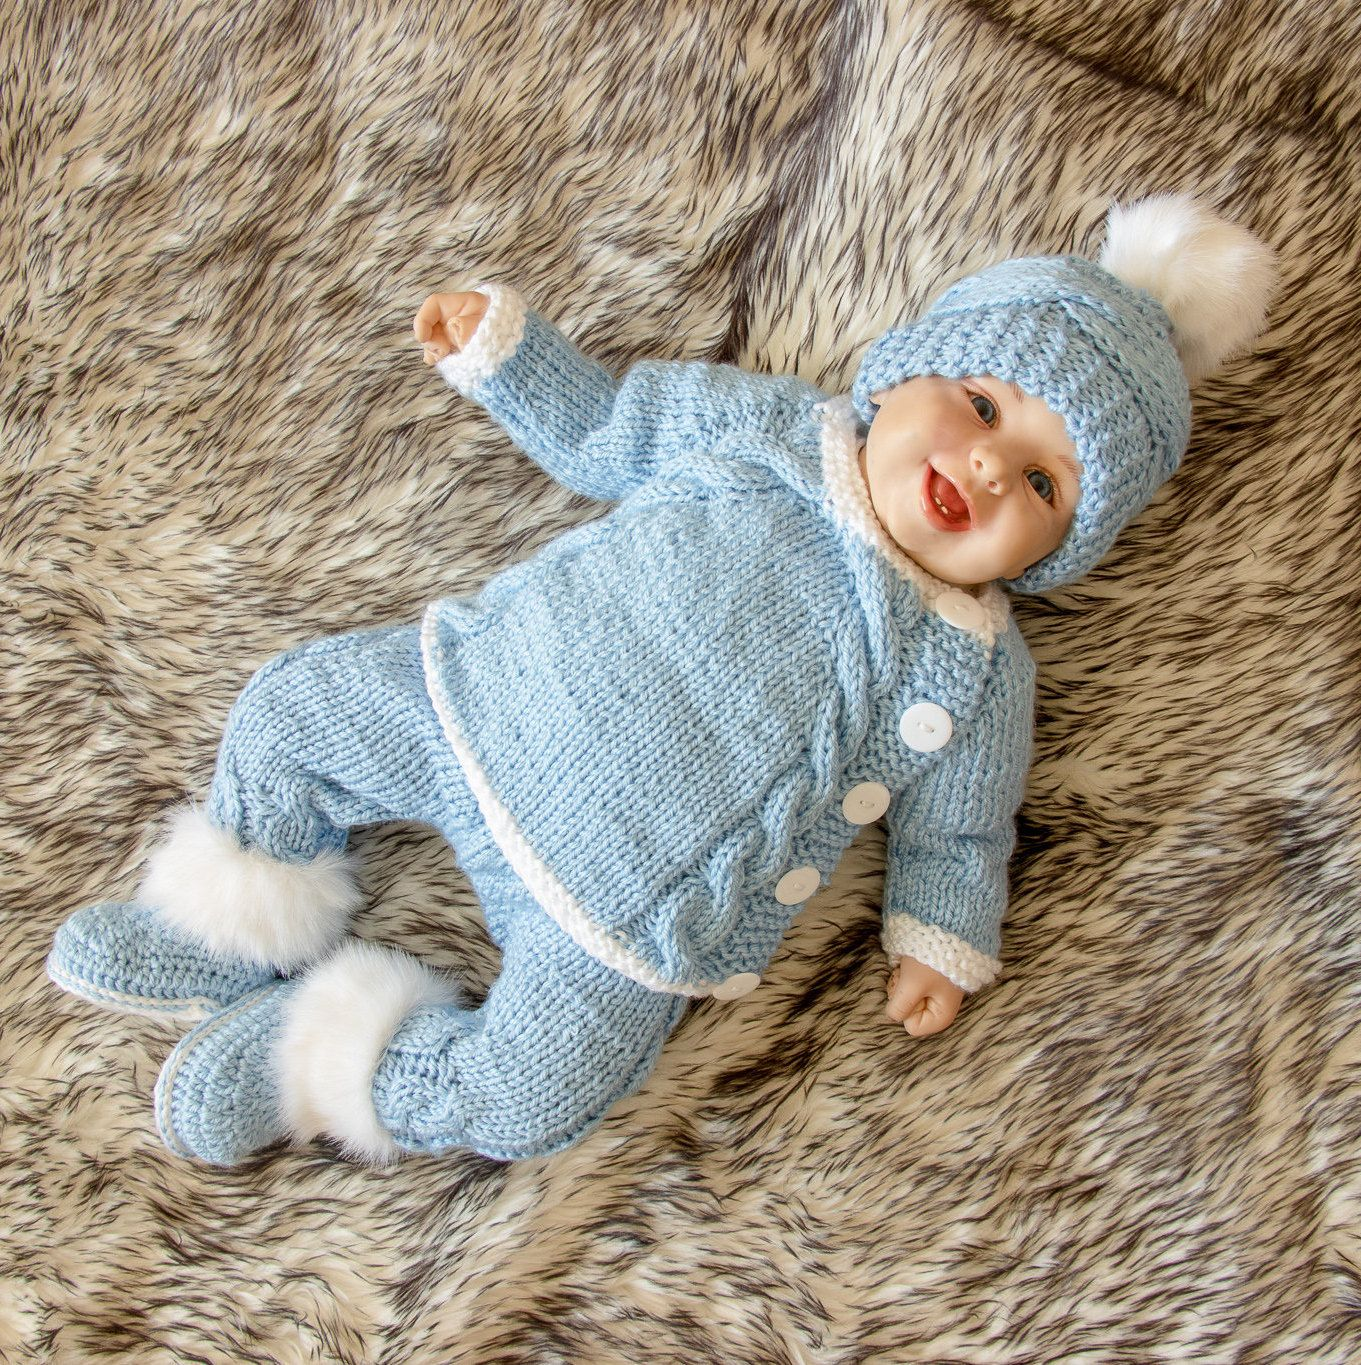 3a0b26d92 Baby boy coming home outfit - Knitted Baby Outfit - Baby boy layette ...